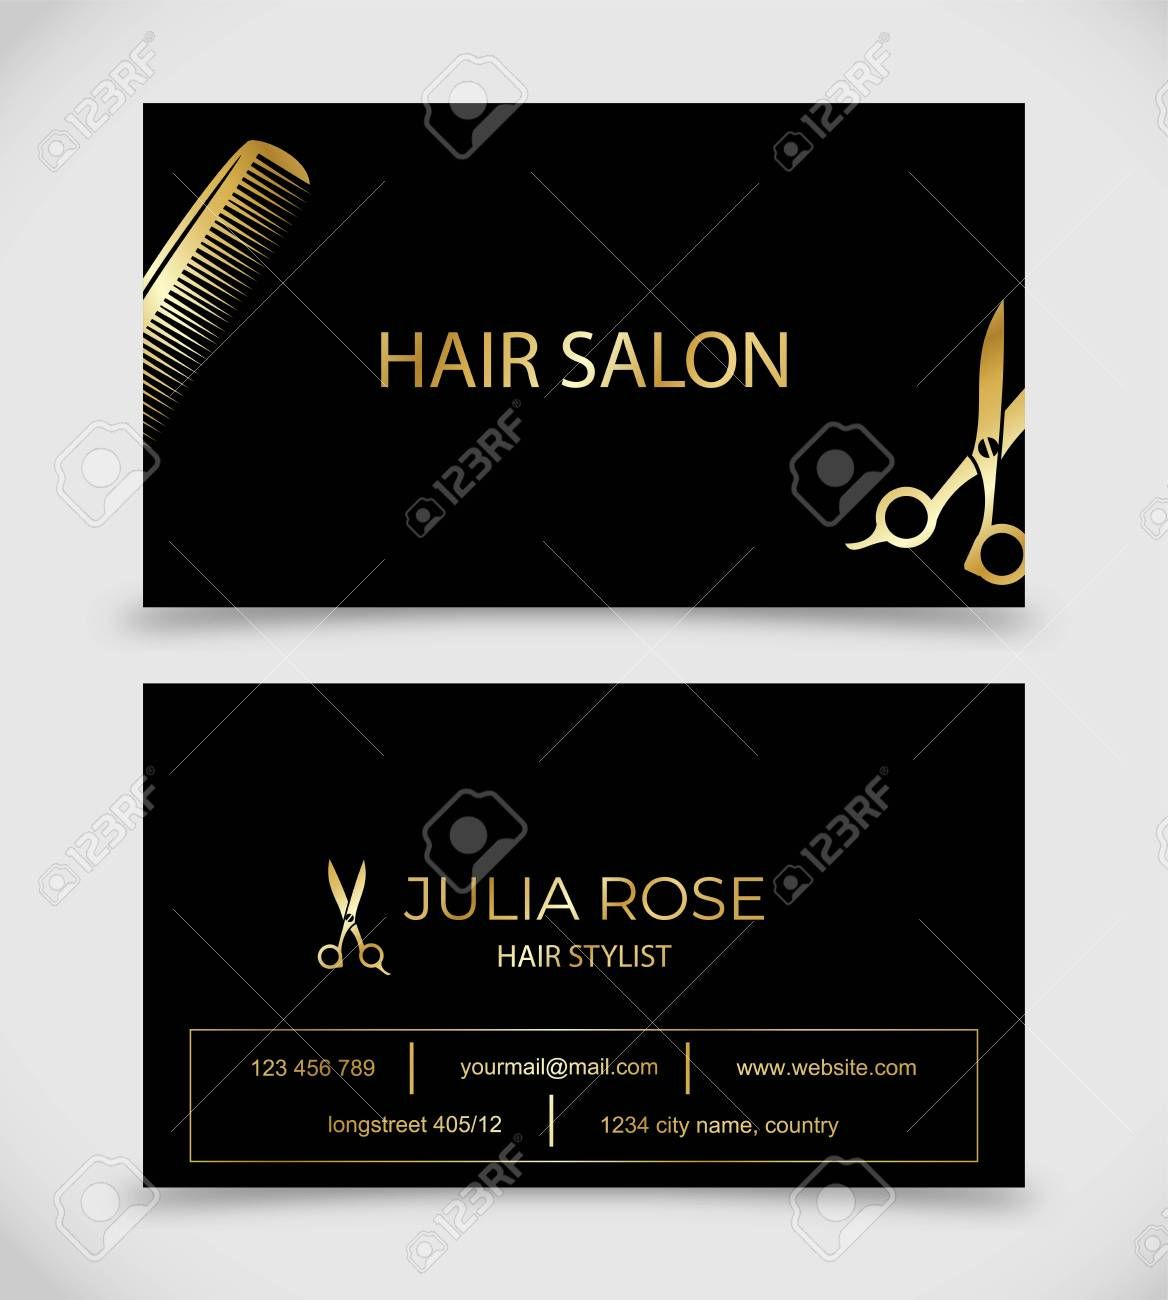 Hair Salon Hair Stylist Business Card Vector Template Within Hair Salon Busines Hairstylist Business Cards Business Cards Vector Templates Hair Salon Business